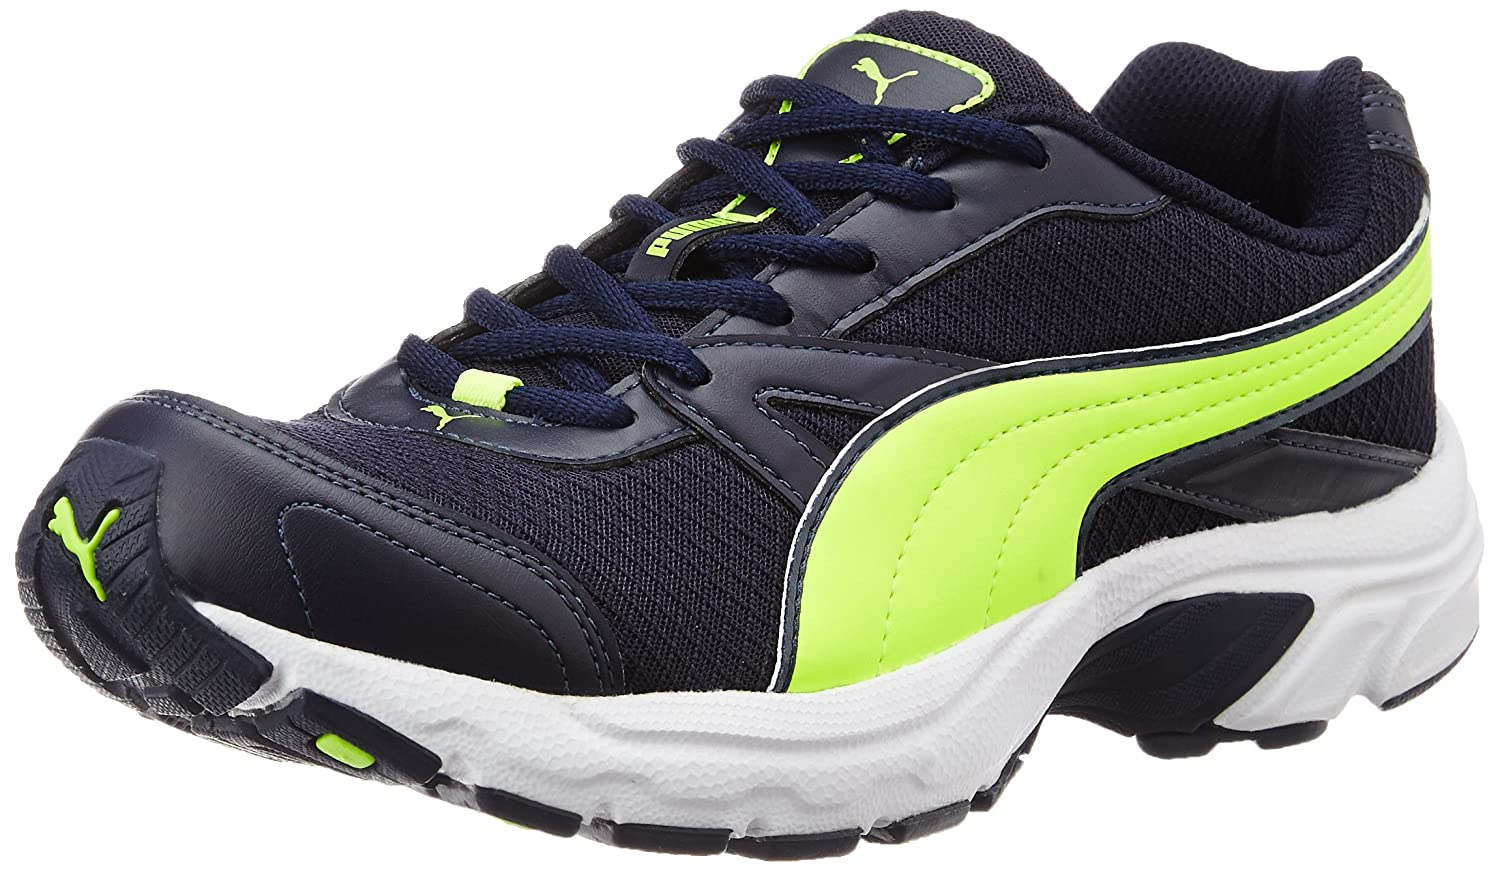 Puma Men's Brilliance Idp Running Shoes: Buy Online at Low Prices in India  - Amazon.in